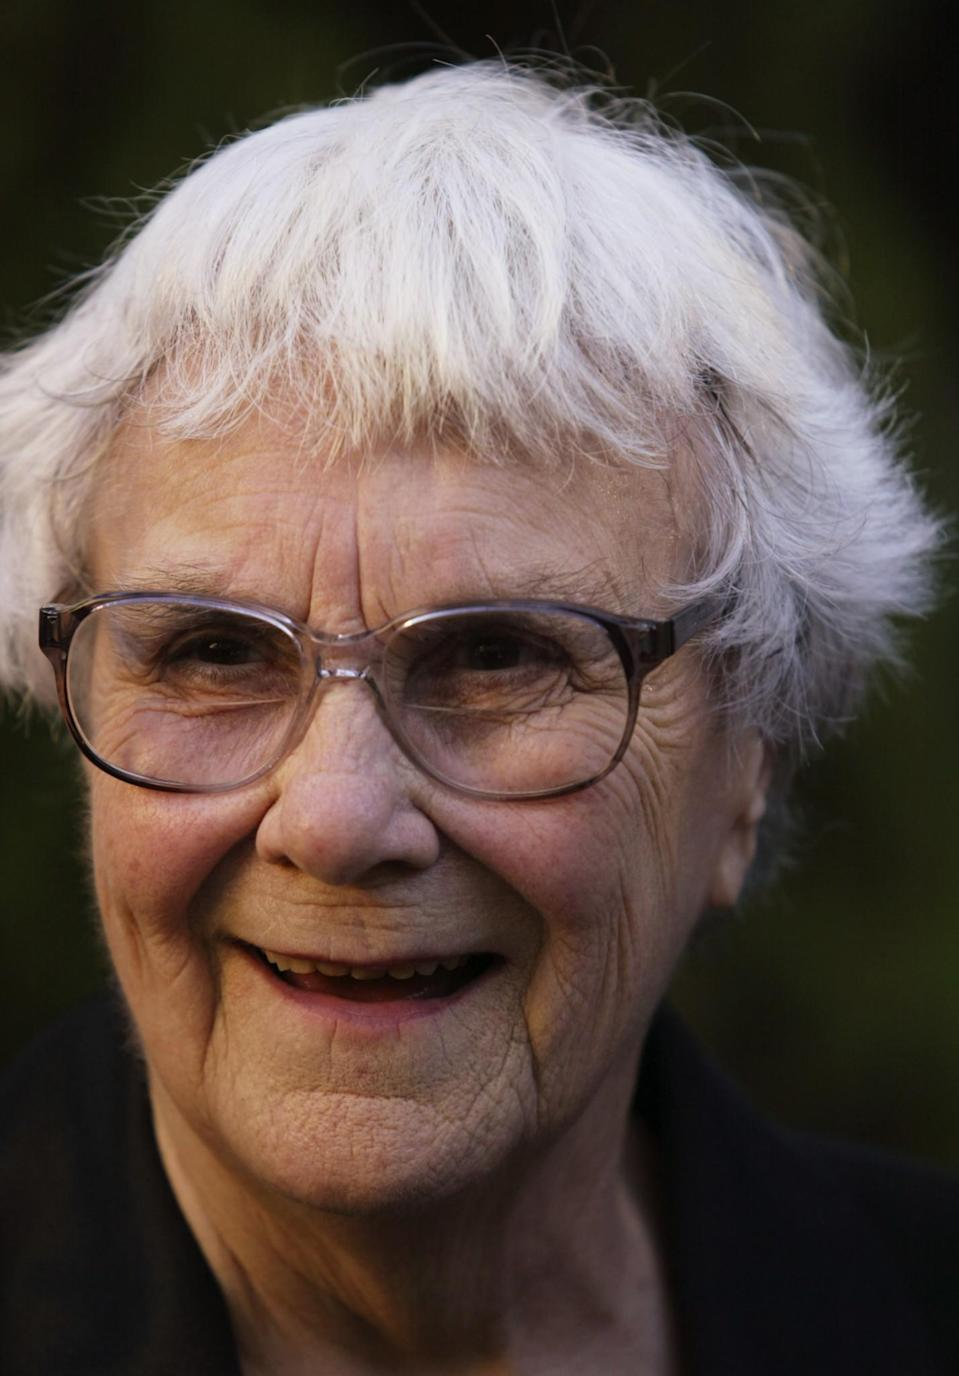 <p>American novelist Harper Lee died on Feb. 19, 2016 at 89. Photo from Getty Images </p>